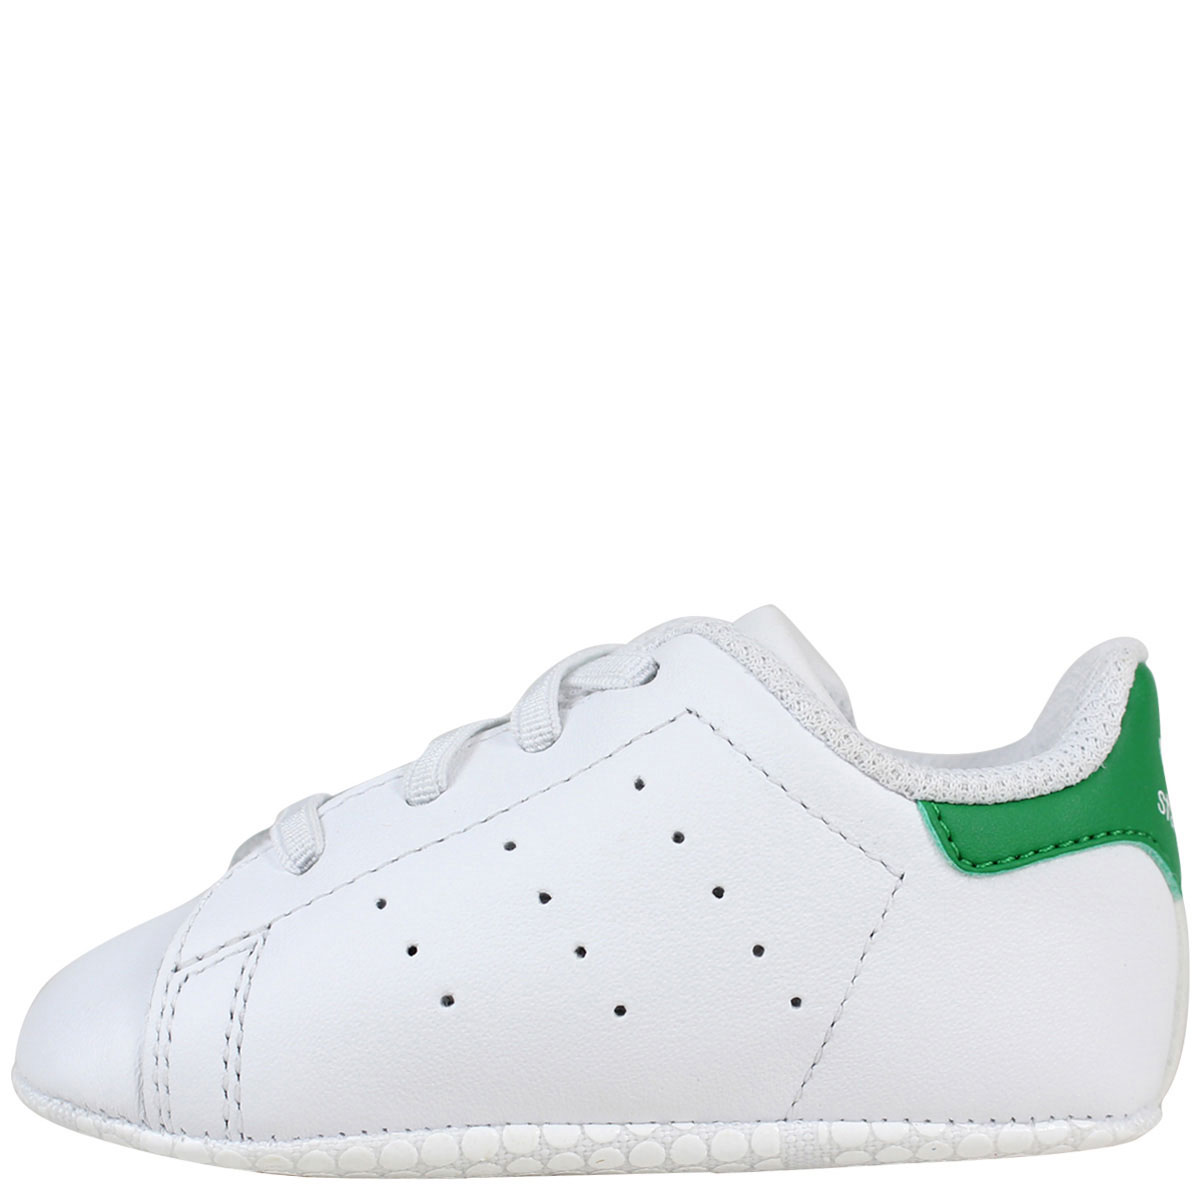 best authentic 67a3c 6b684 adidas Originals STAN SMITH CRIB Stan Smith kids baby Adidas originals  sneakers shoes B24101 white